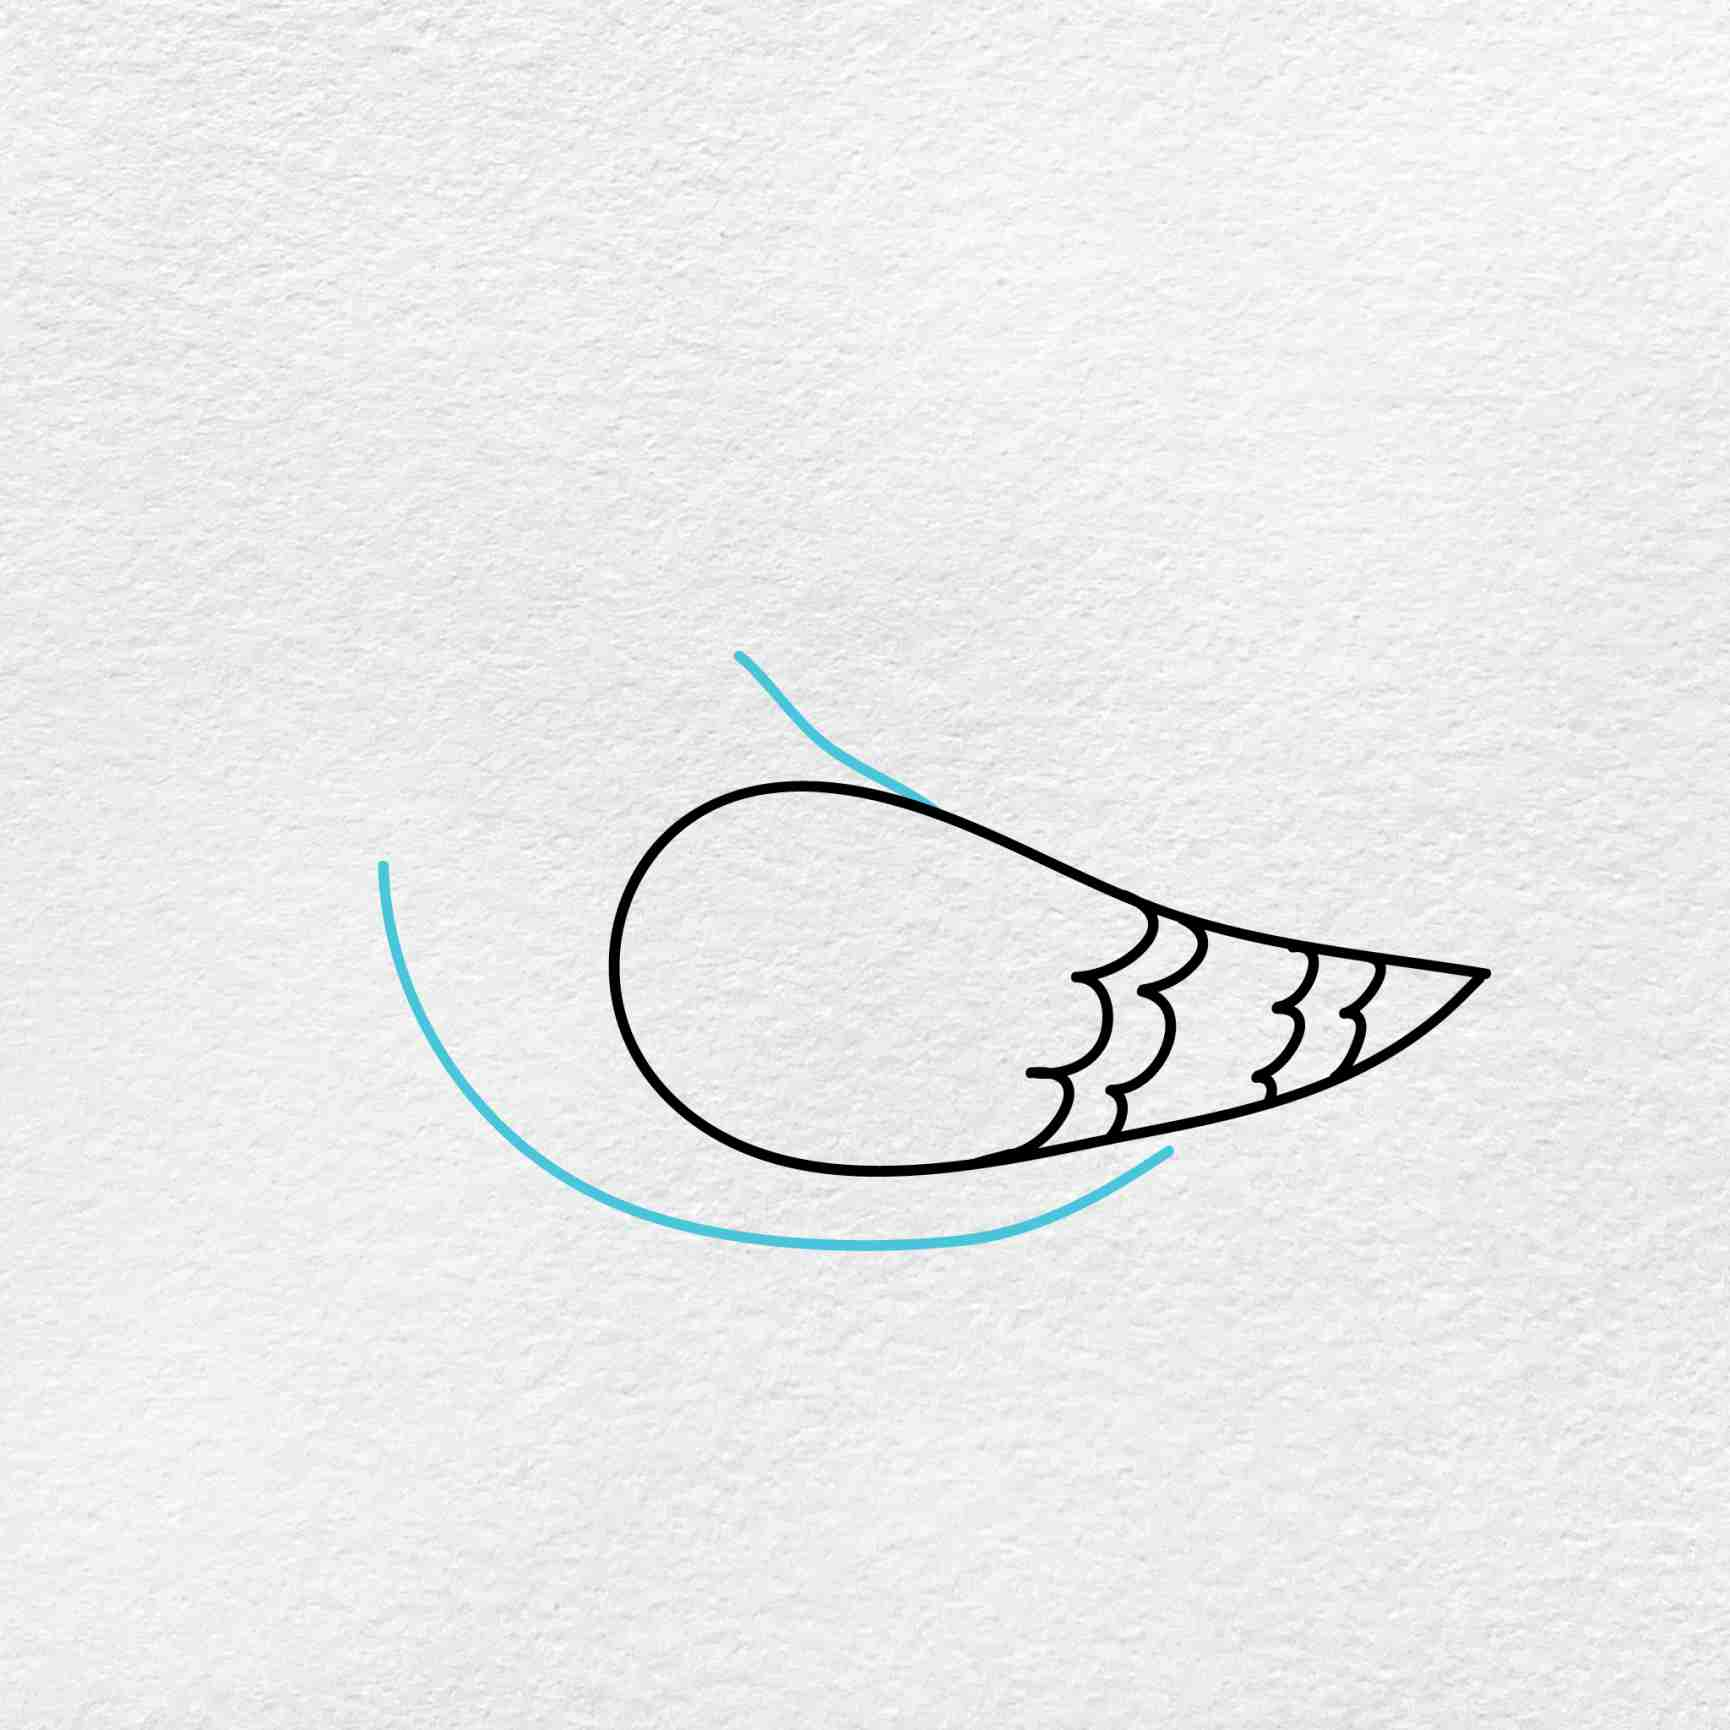 How To Draw A Pigeon: Step 2